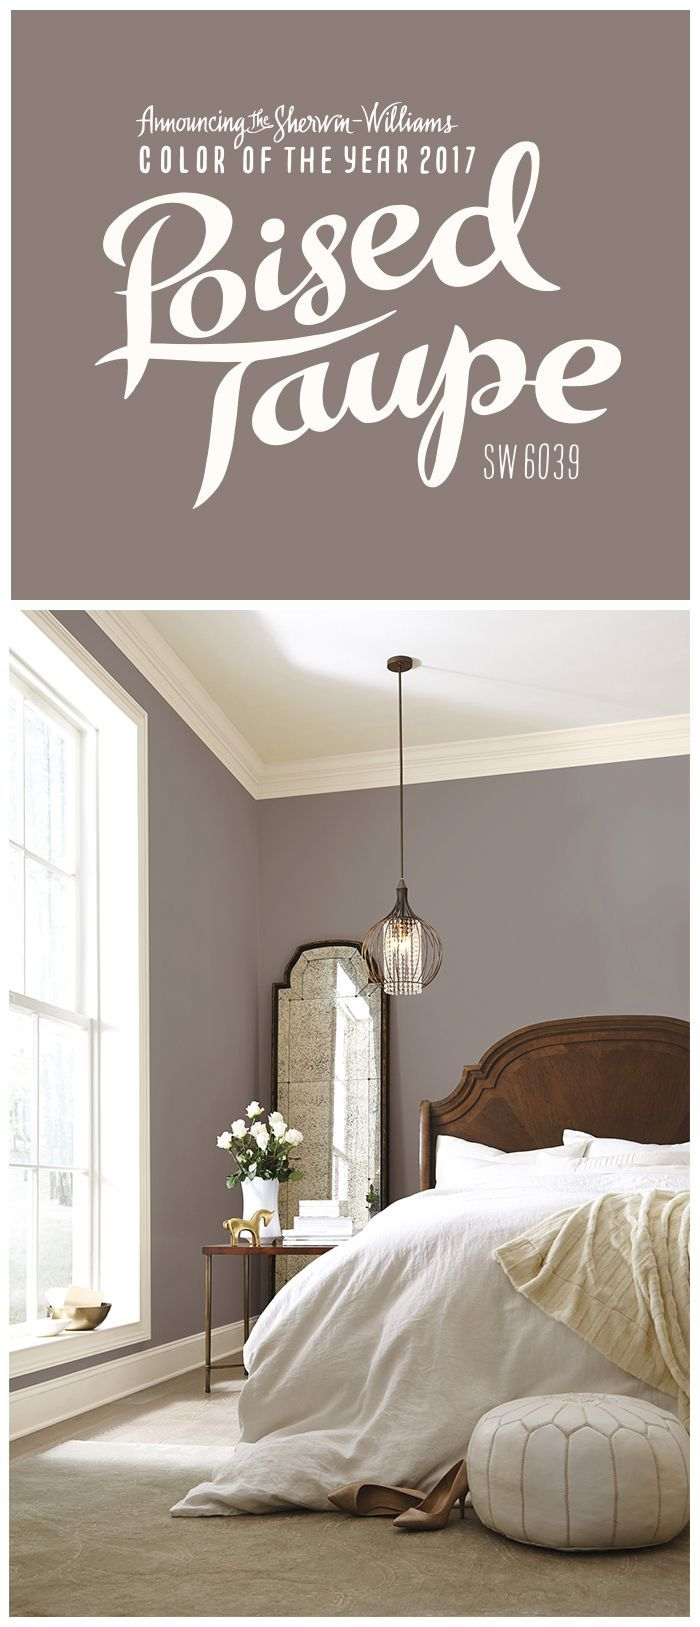 pour ma chambre a coucher home decor pinterest sovrum heminredning och hus. Black Bedroom Furniture Sets. Home Design Ideas